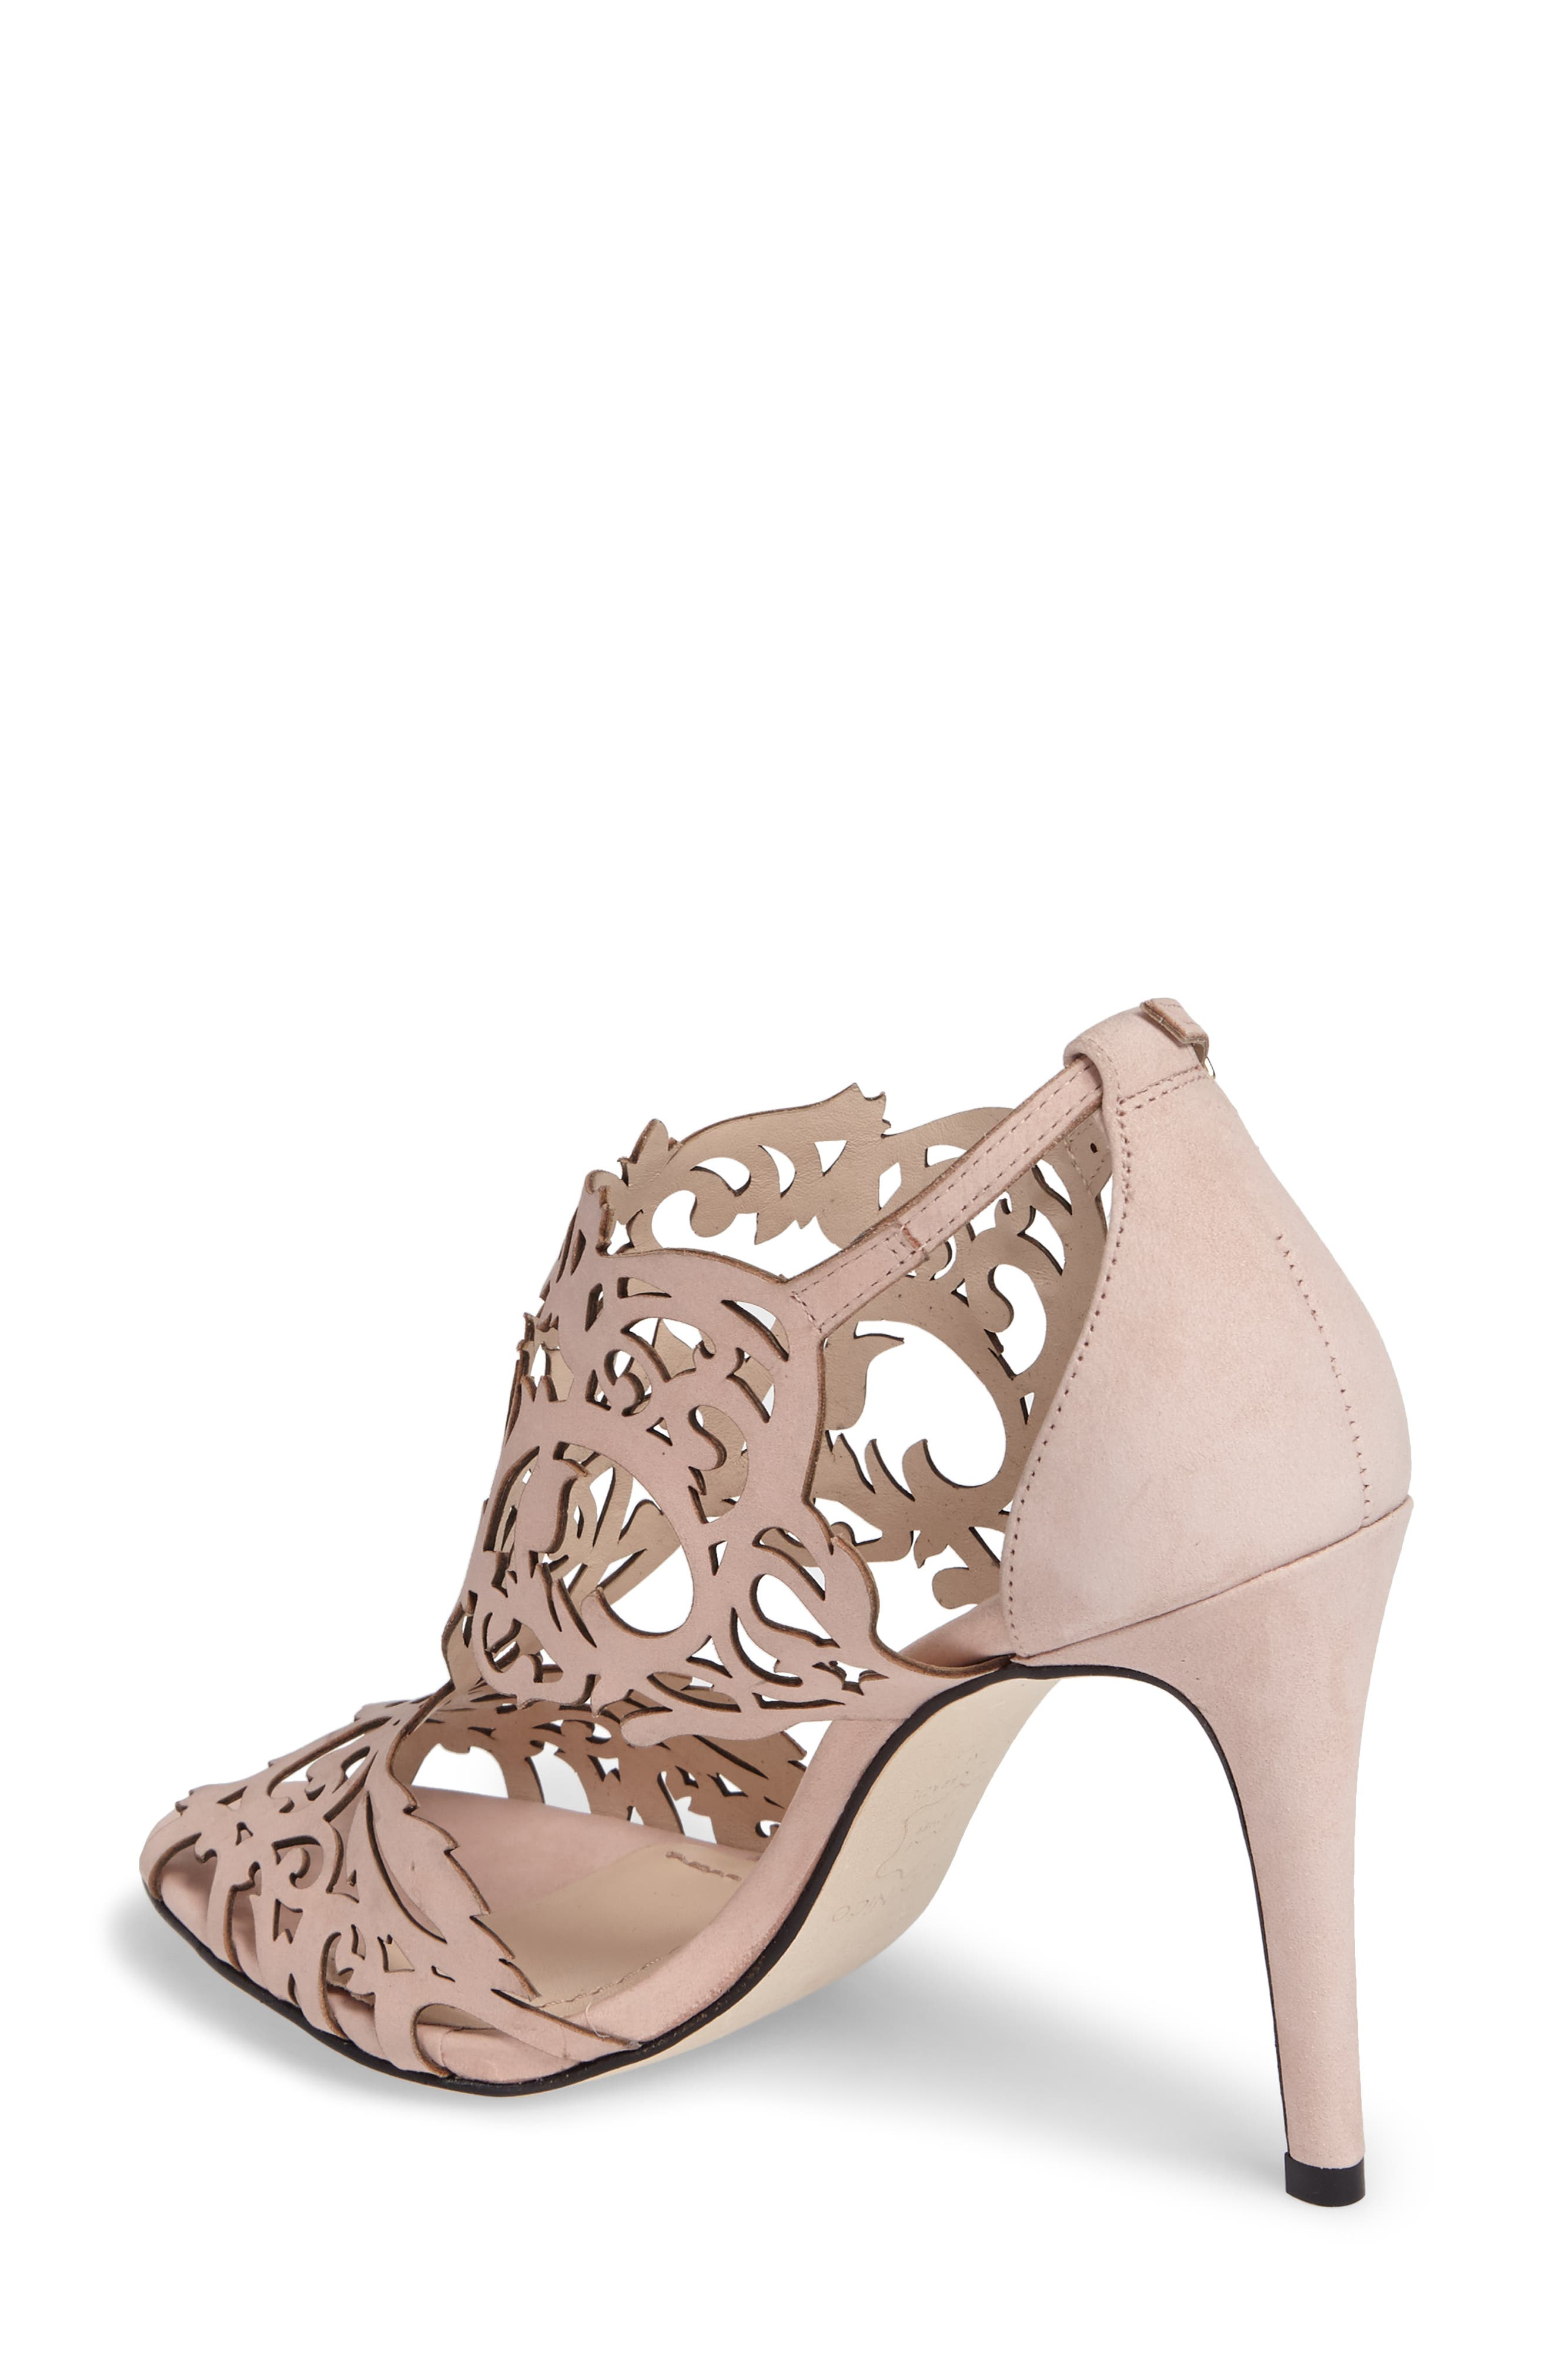 Marcela Laser Cutout Sandal,                             Alternate thumbnail 2, color,                             Blush Nubuck Leather